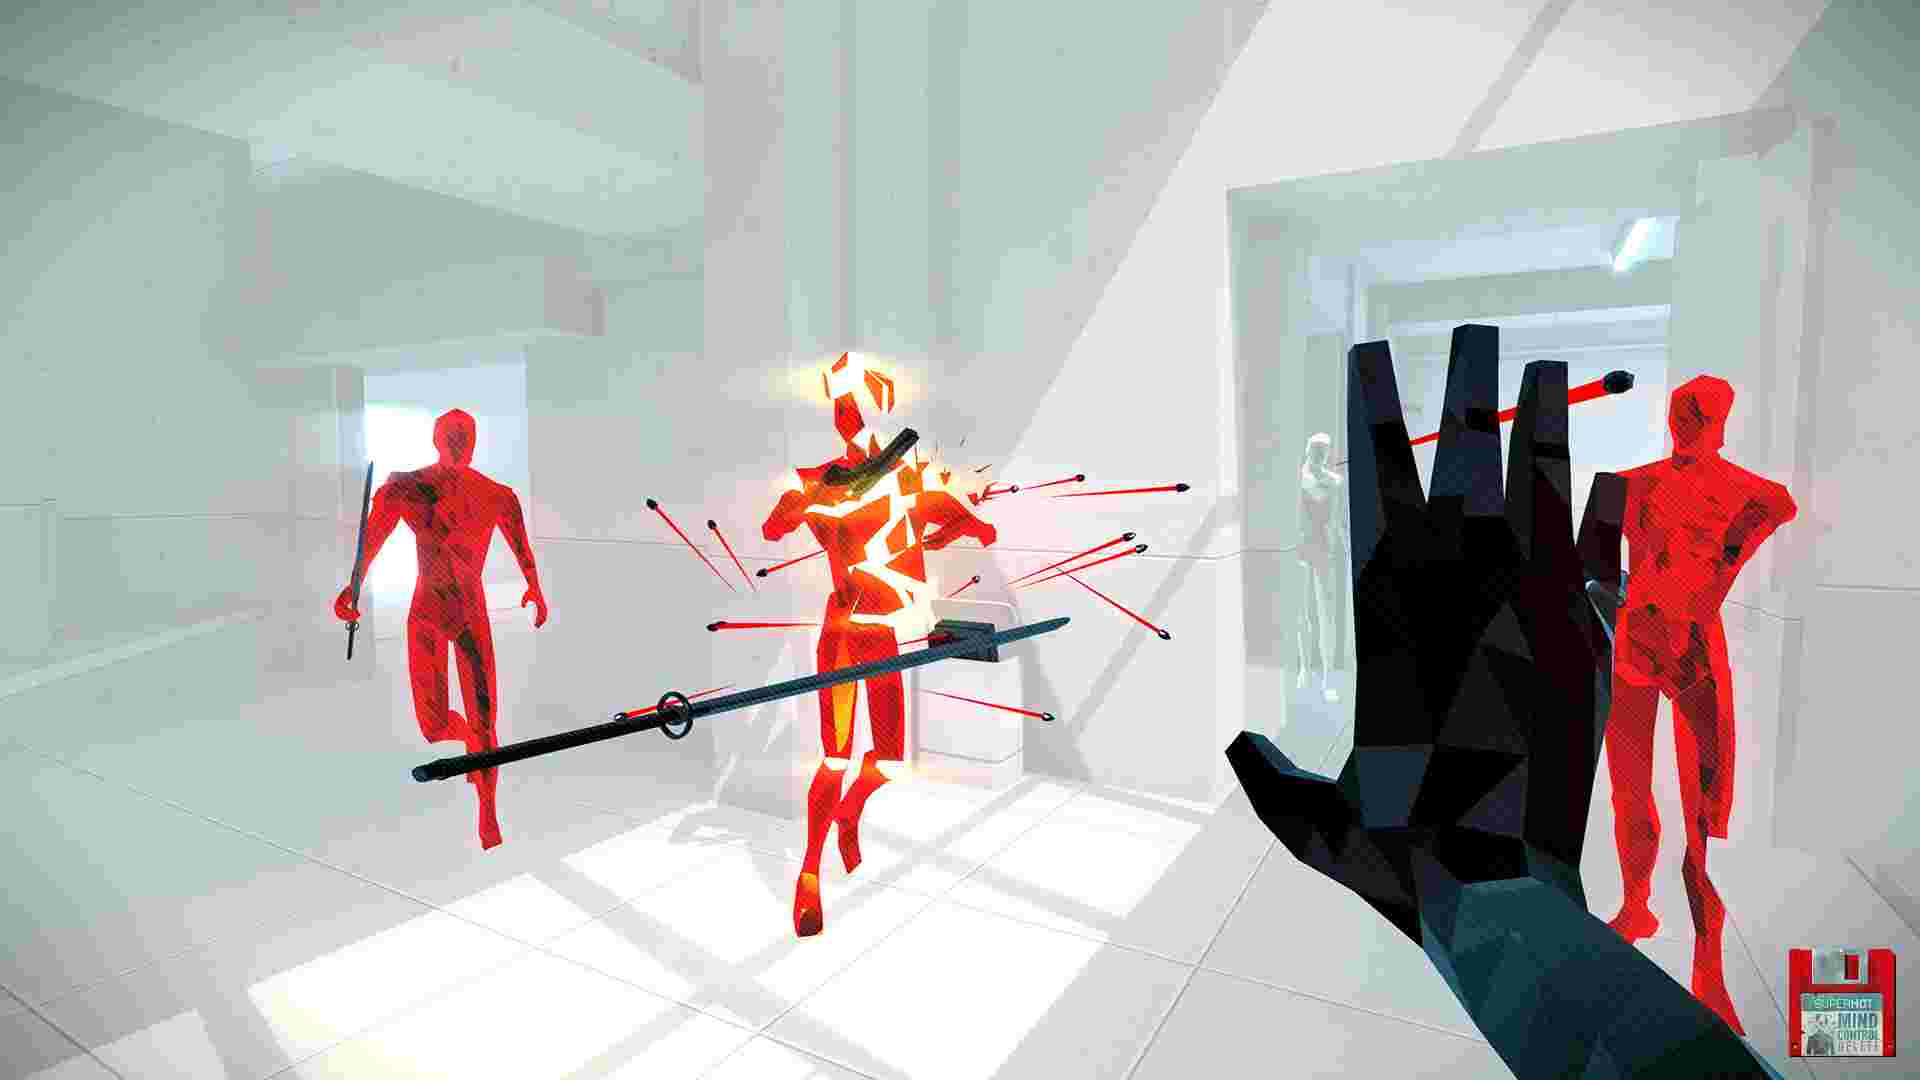 Superhot Mind Control Delete is exciting